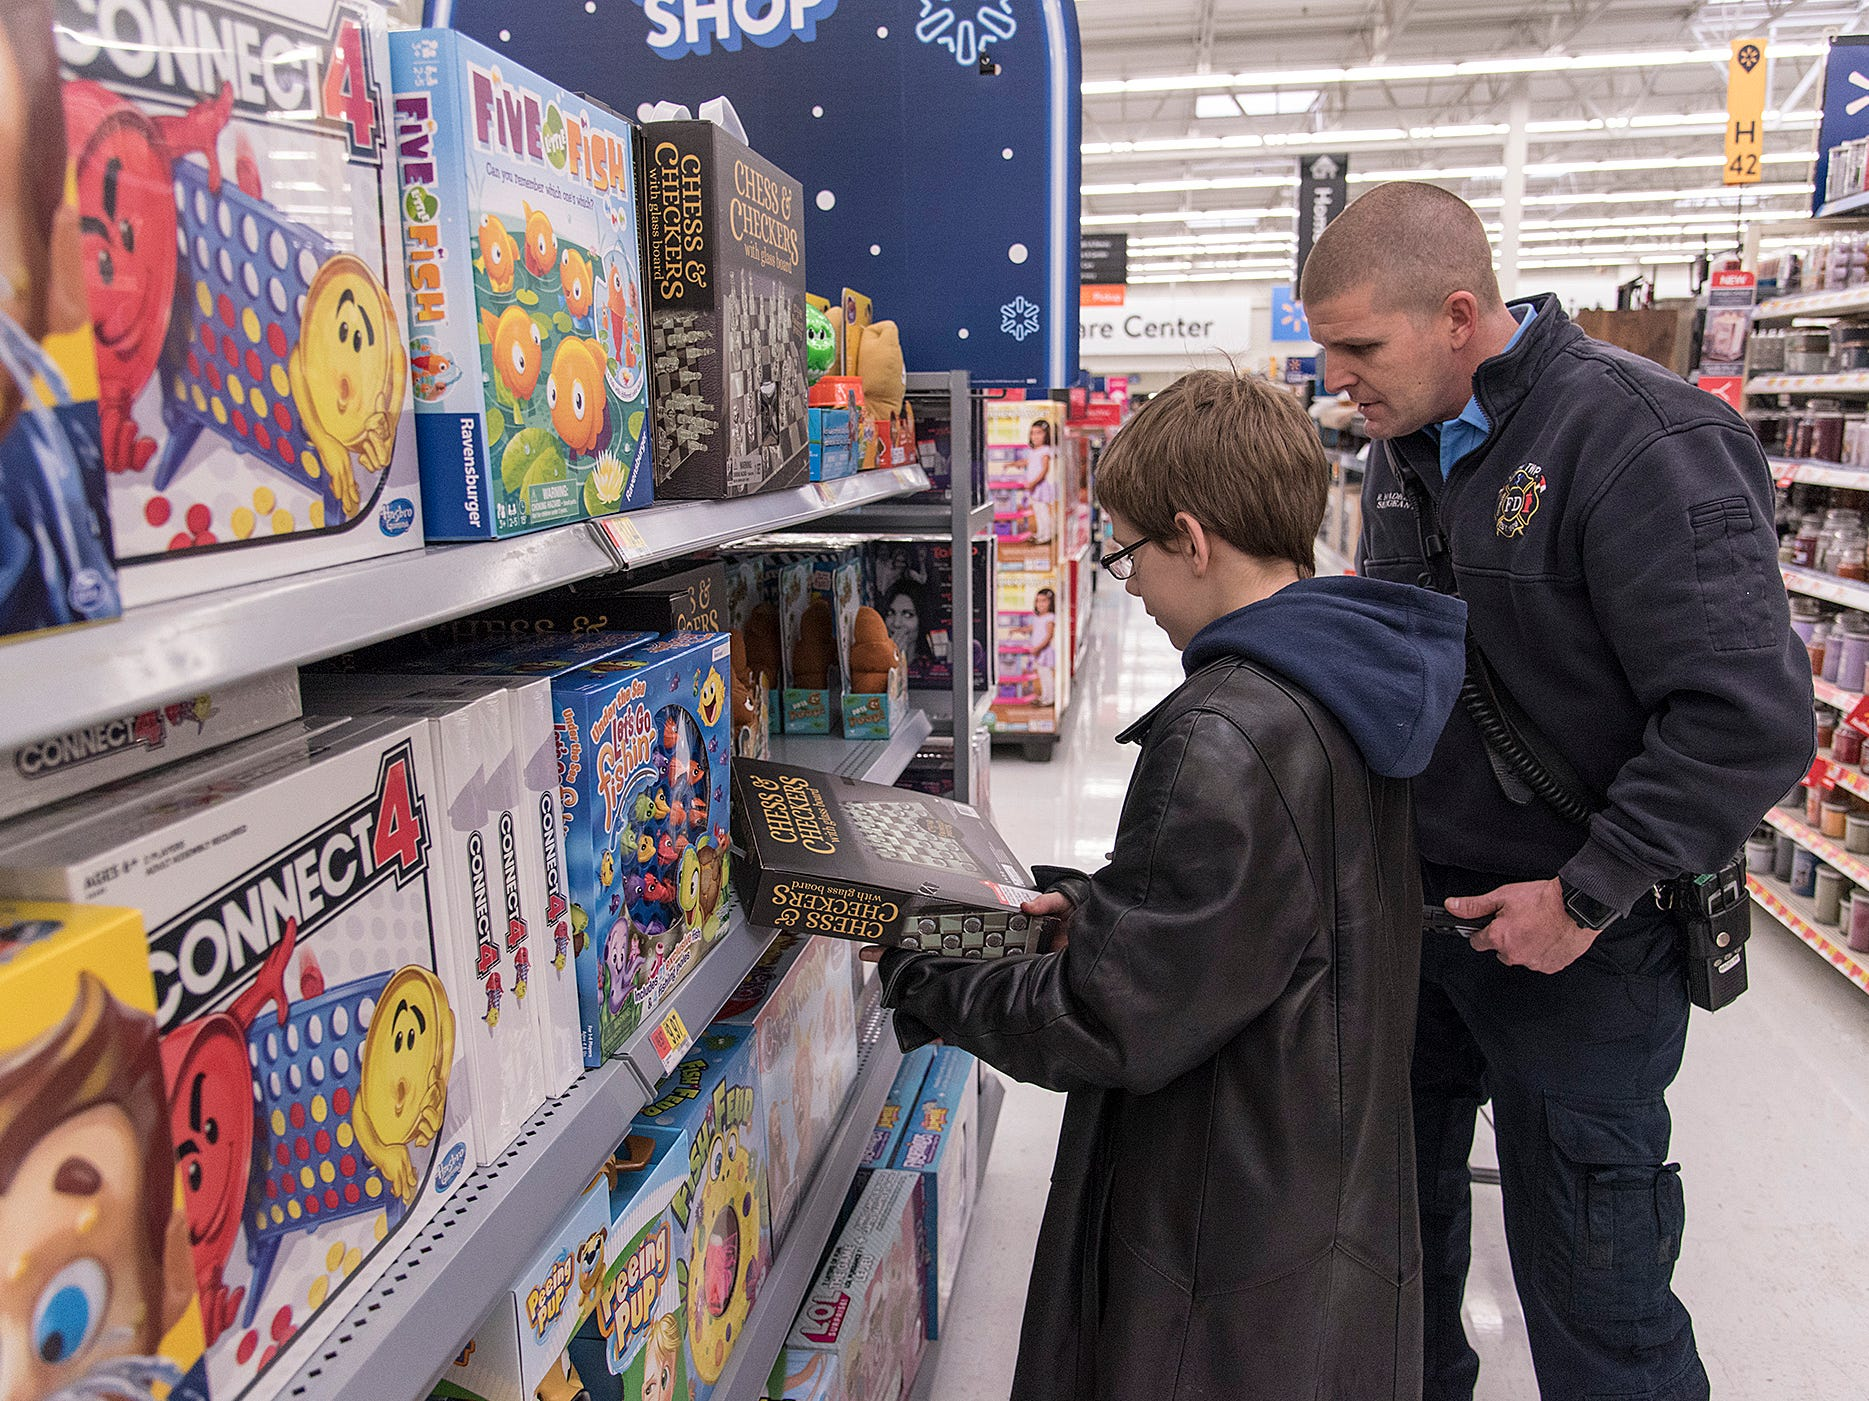 Xander McDevitt and Lyon Twp Fire Department Sgt Reggie Madeline look for a board game for Xander's family.